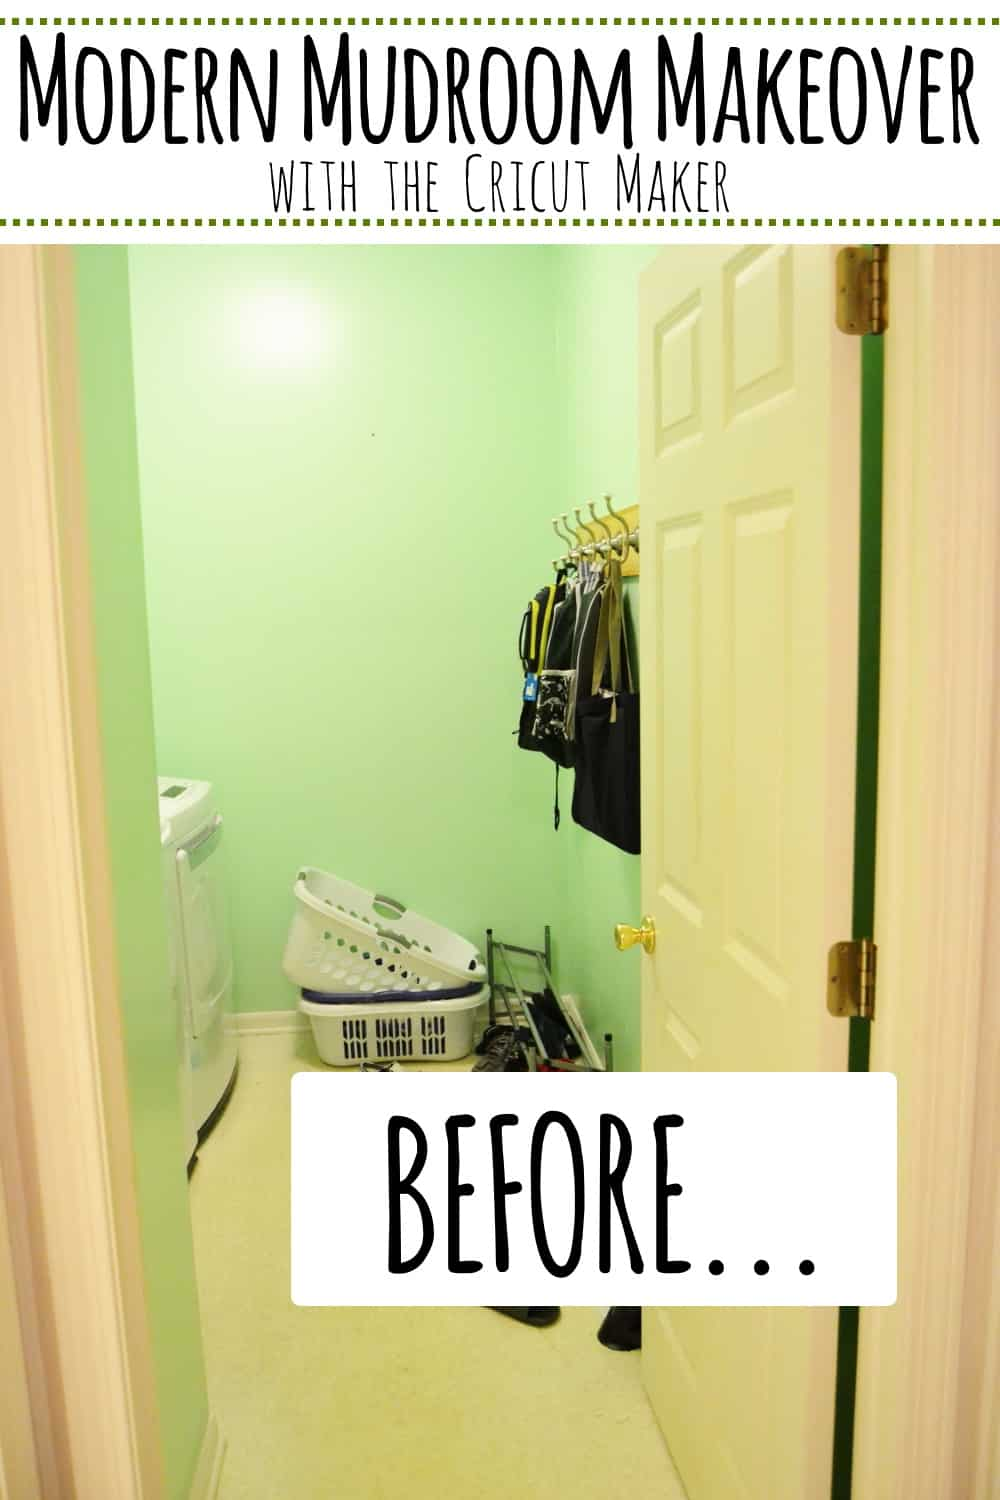 #AD With the help of my Cricut Maker I put together a modern mudroom space in the laundry room of my new house. #cricutmade